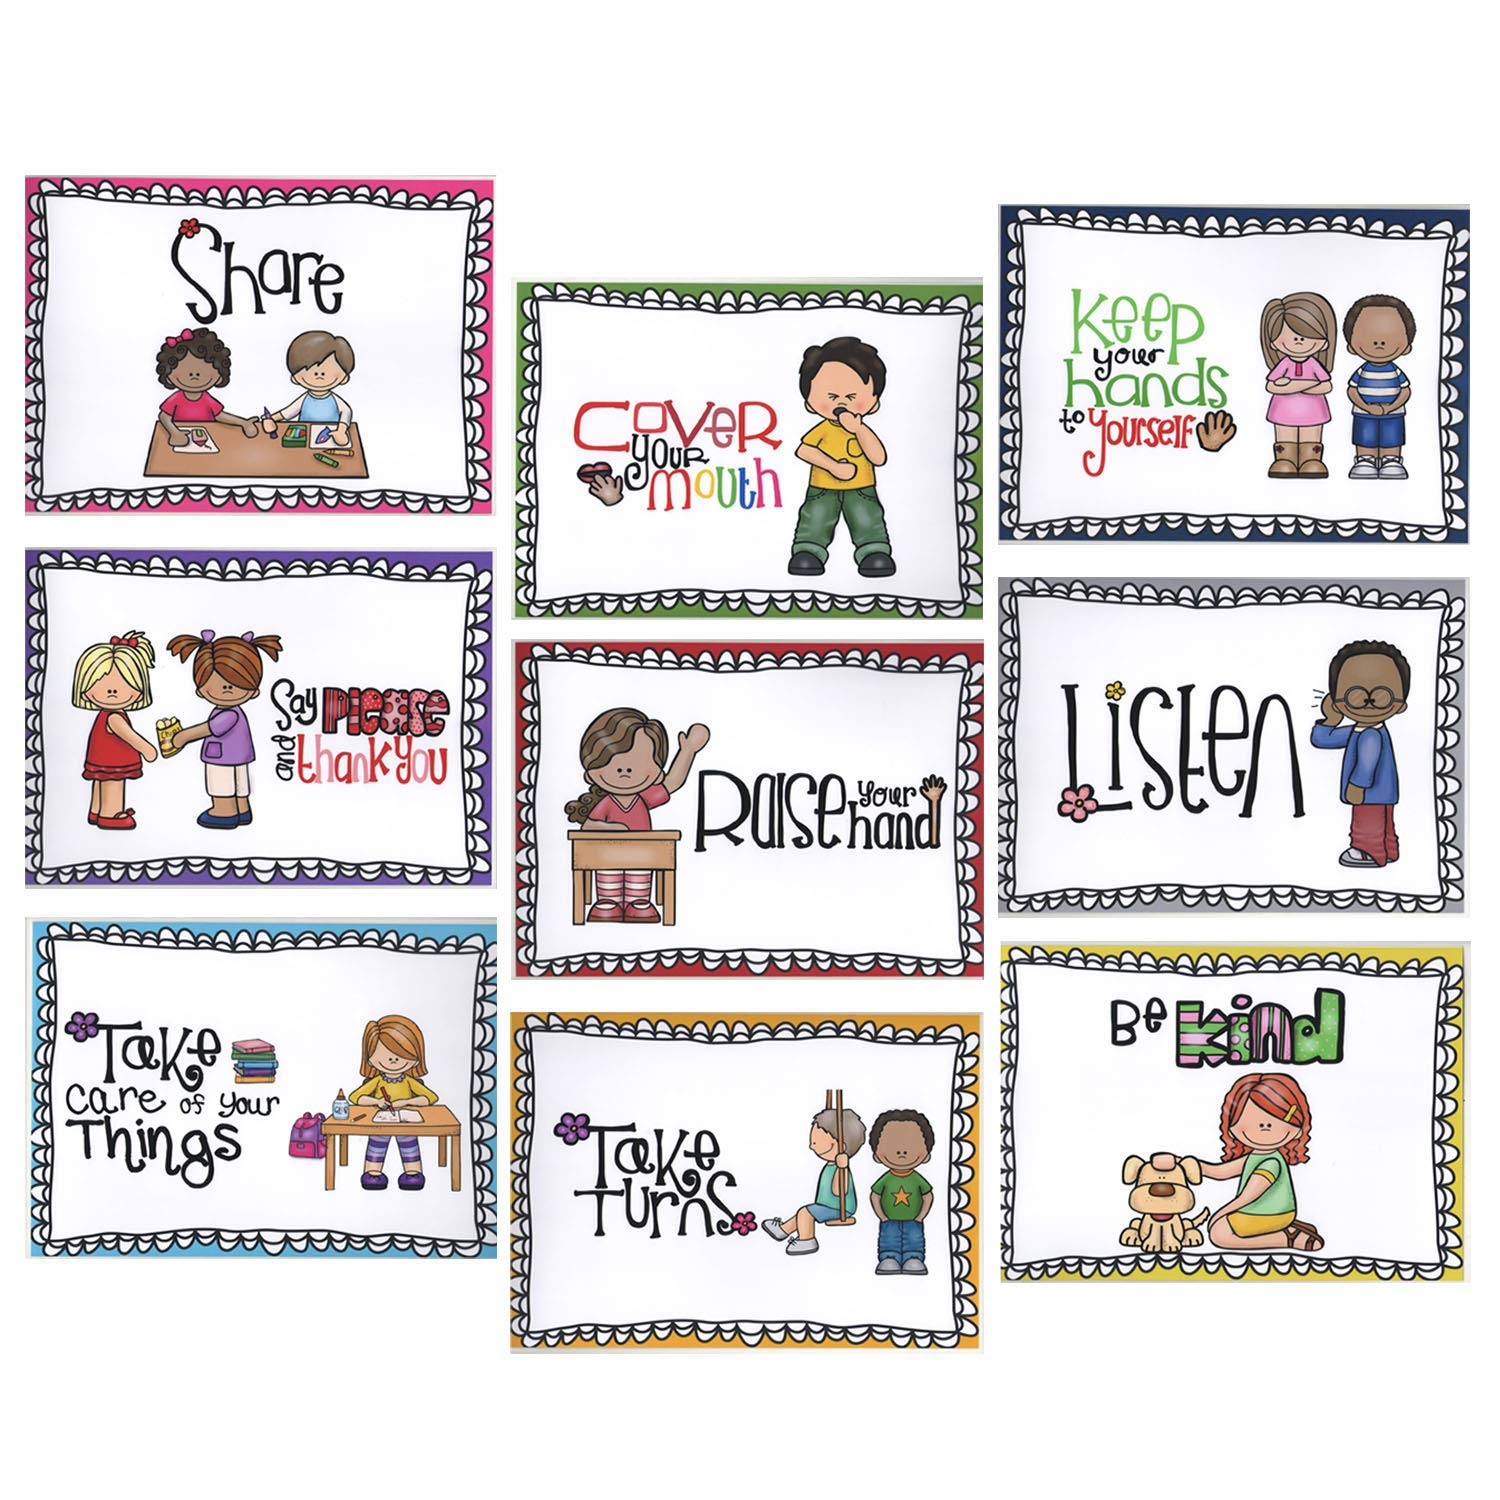 Alpurple 9 Packs A4 Size Class Rules Posters - A4 Size Classroom Rules Behavior Educational Posters,Good Habits Manners Chart for Preschool and Primary school Supplies